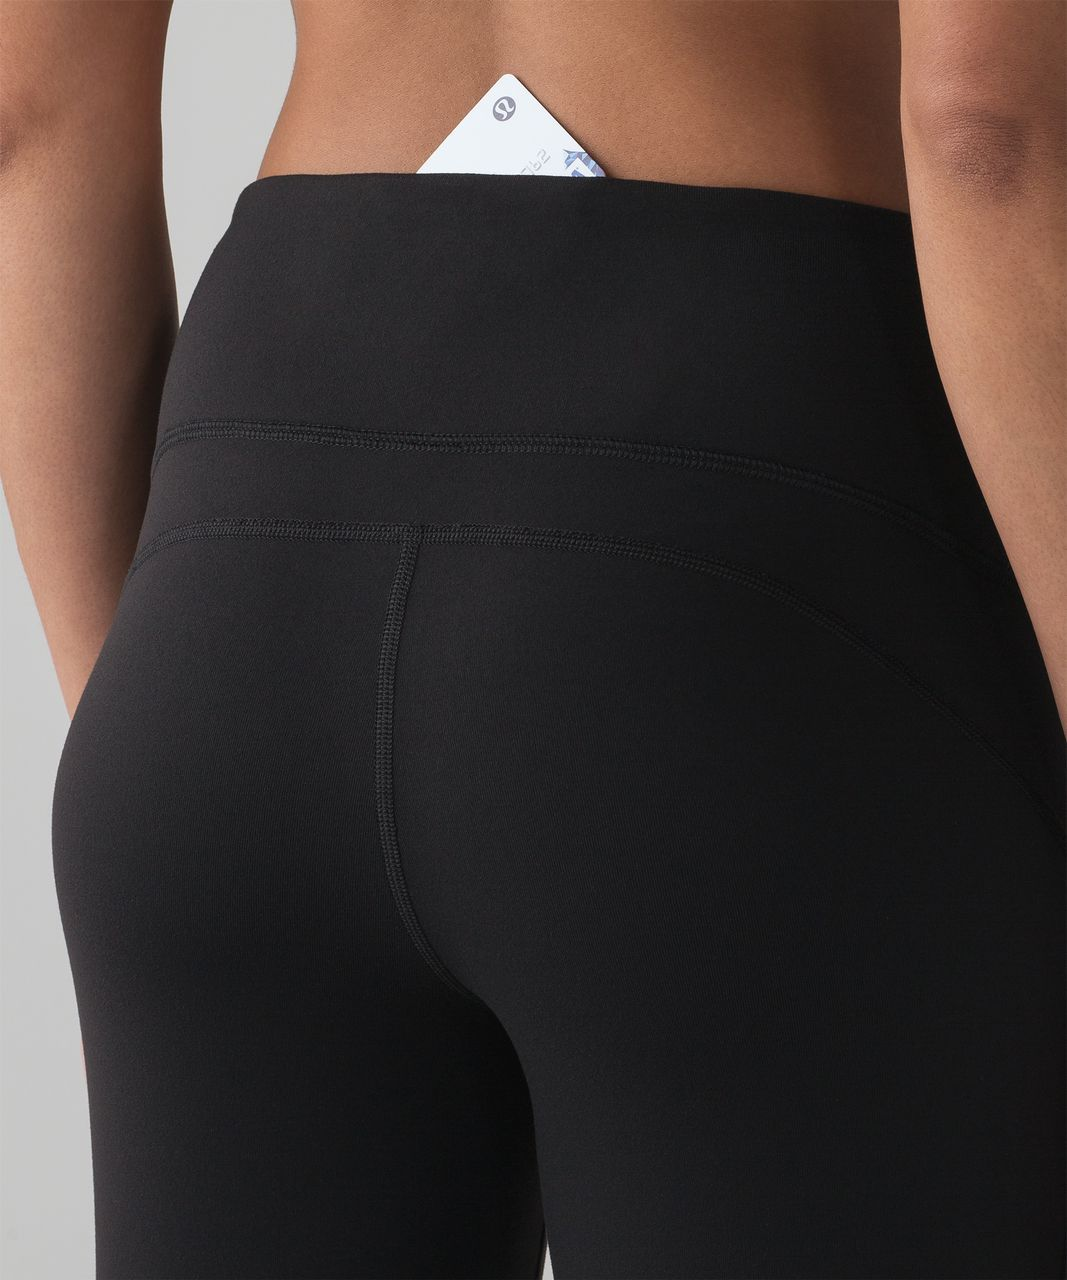 c4482830a75d1 Lululemon Out To Lunge Untight Tight - Black - lulu fanatics